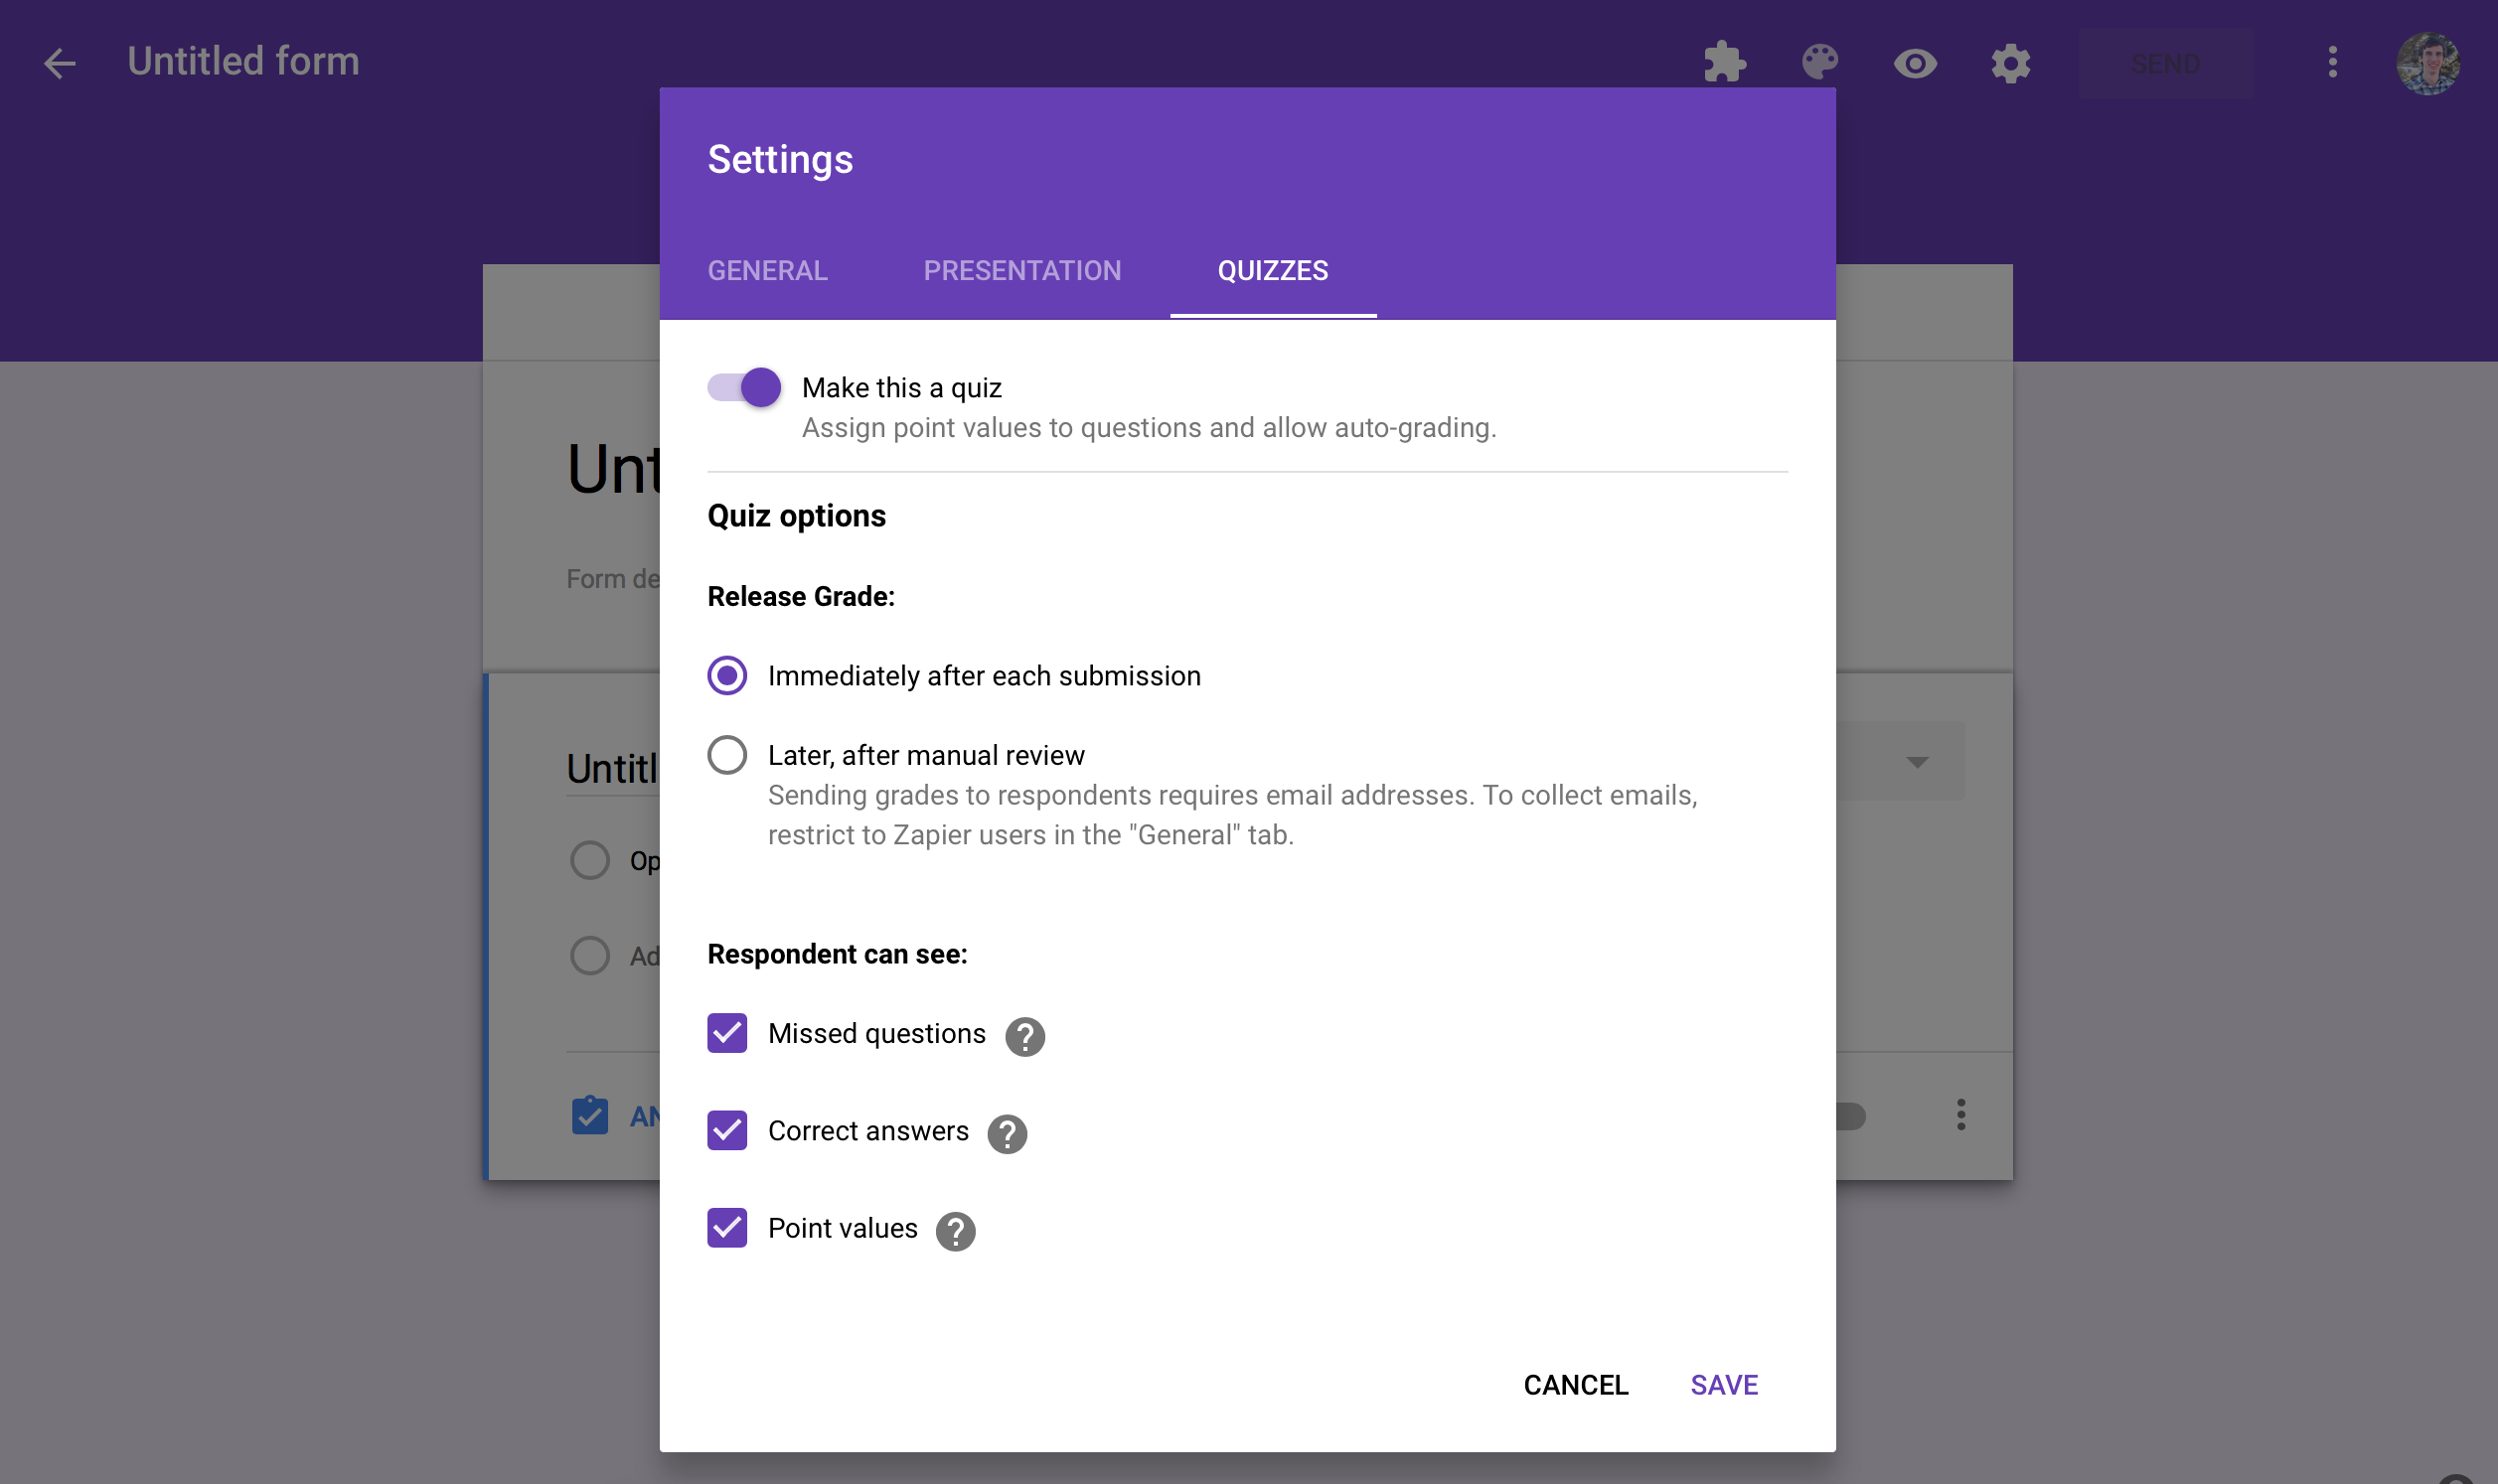 Google Spreadsheet Survey Form For Google Forms Guide: Everything You Need To Make Great Forms For Free